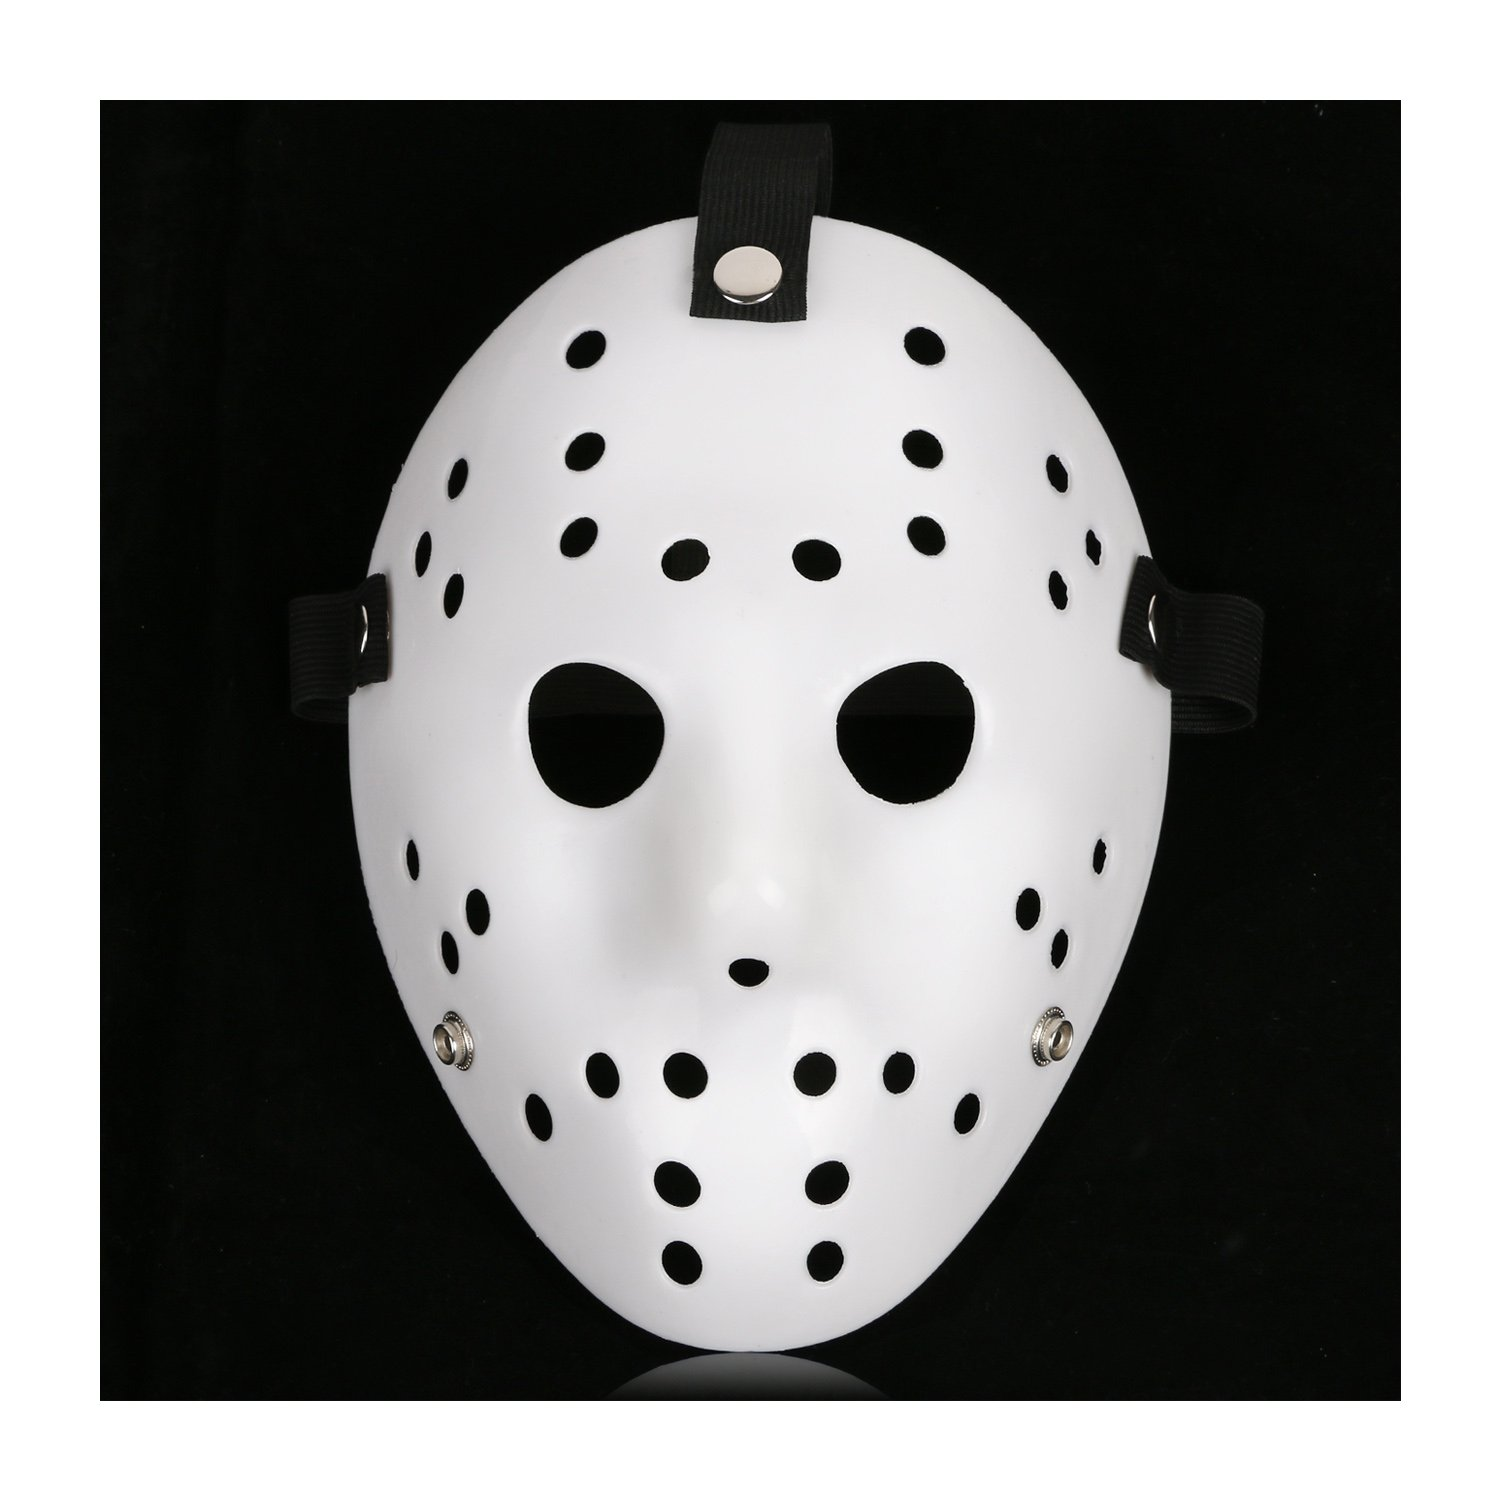 CASACLAUSI Jason Mask Cosplay Halloween Costume Mask Prop Horror Hockey (One Size, Pure White)